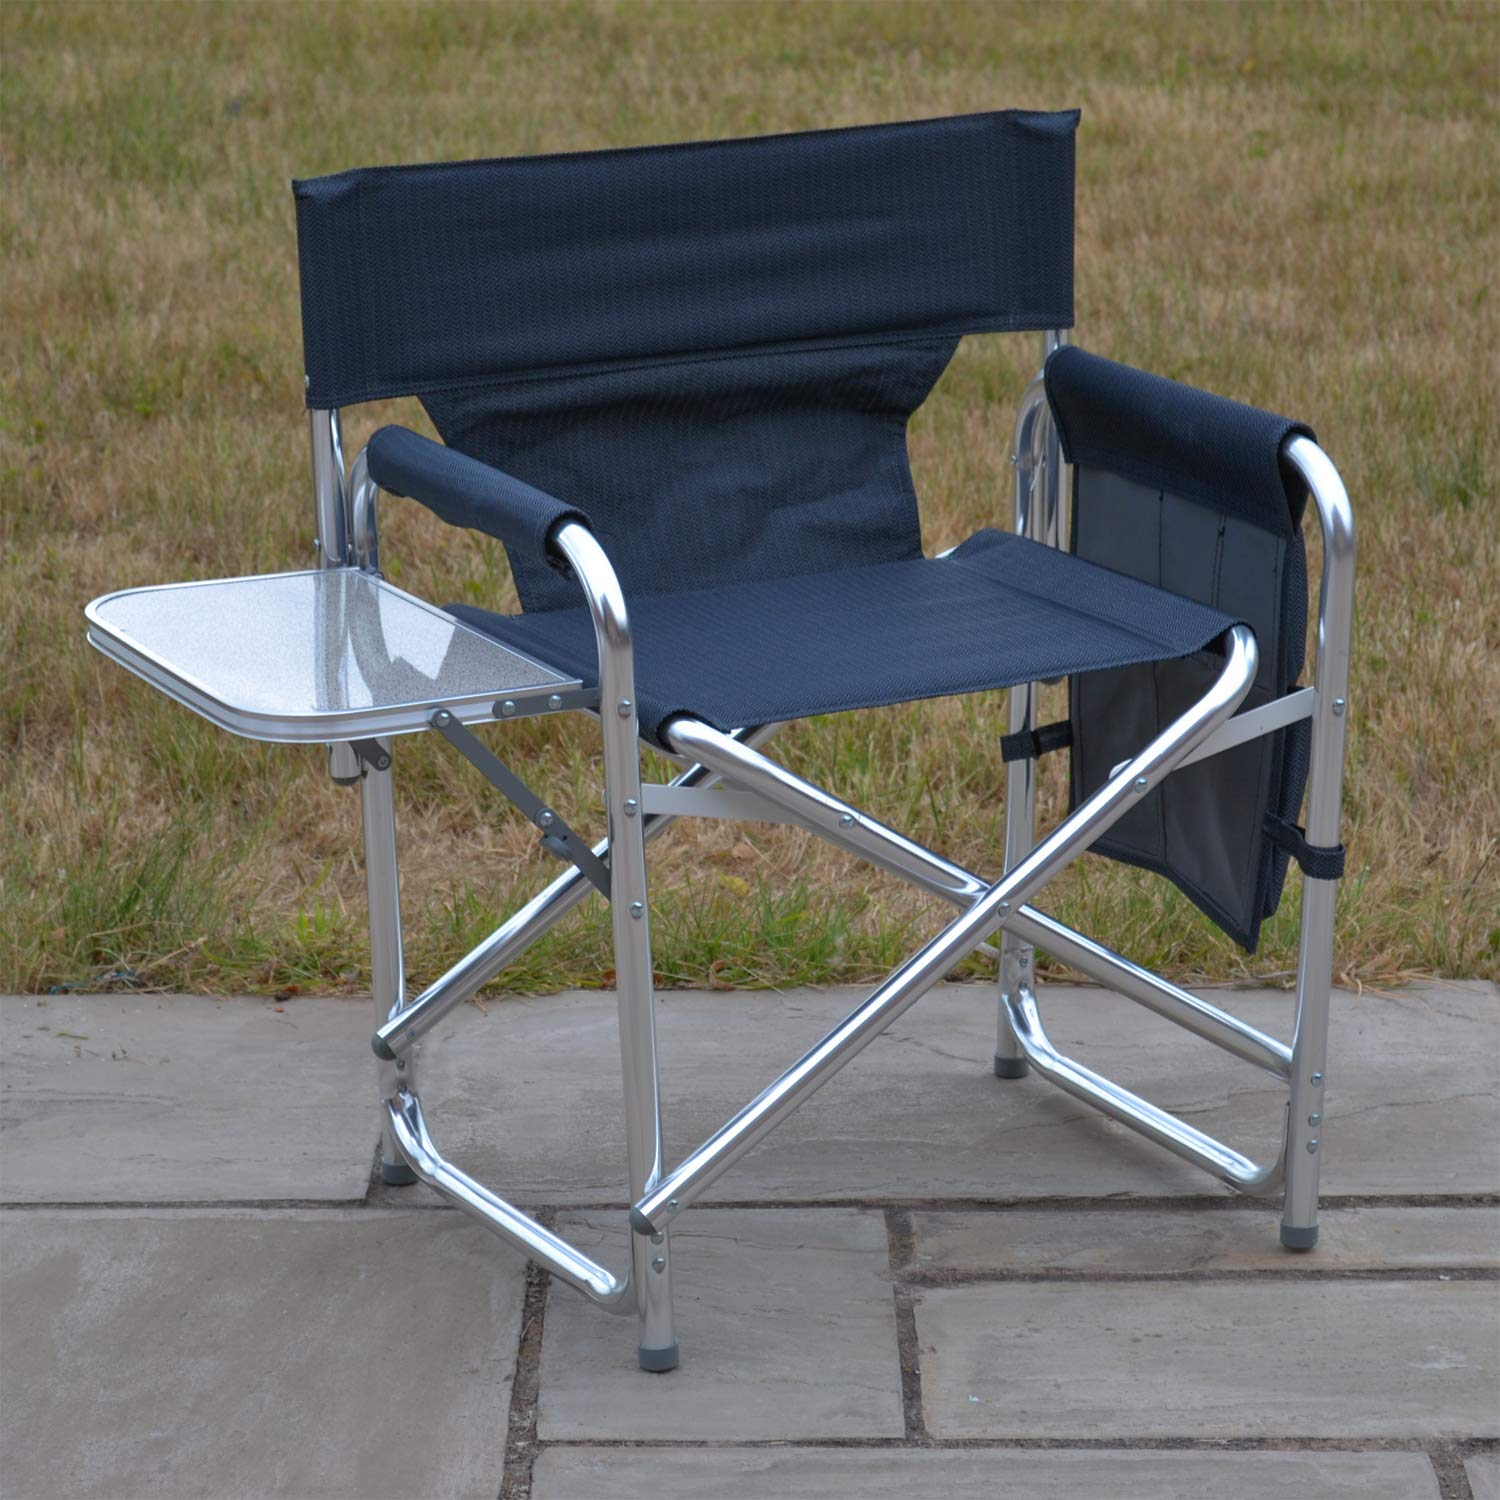 With Folding Side Table And Side Pockets Strong Sturdy Solid Aluminium Frame Green Fishing Garden Camping Event Chair Sun Leisure/® Folding Alloy Sports Directors Chair Green//Blue//Black